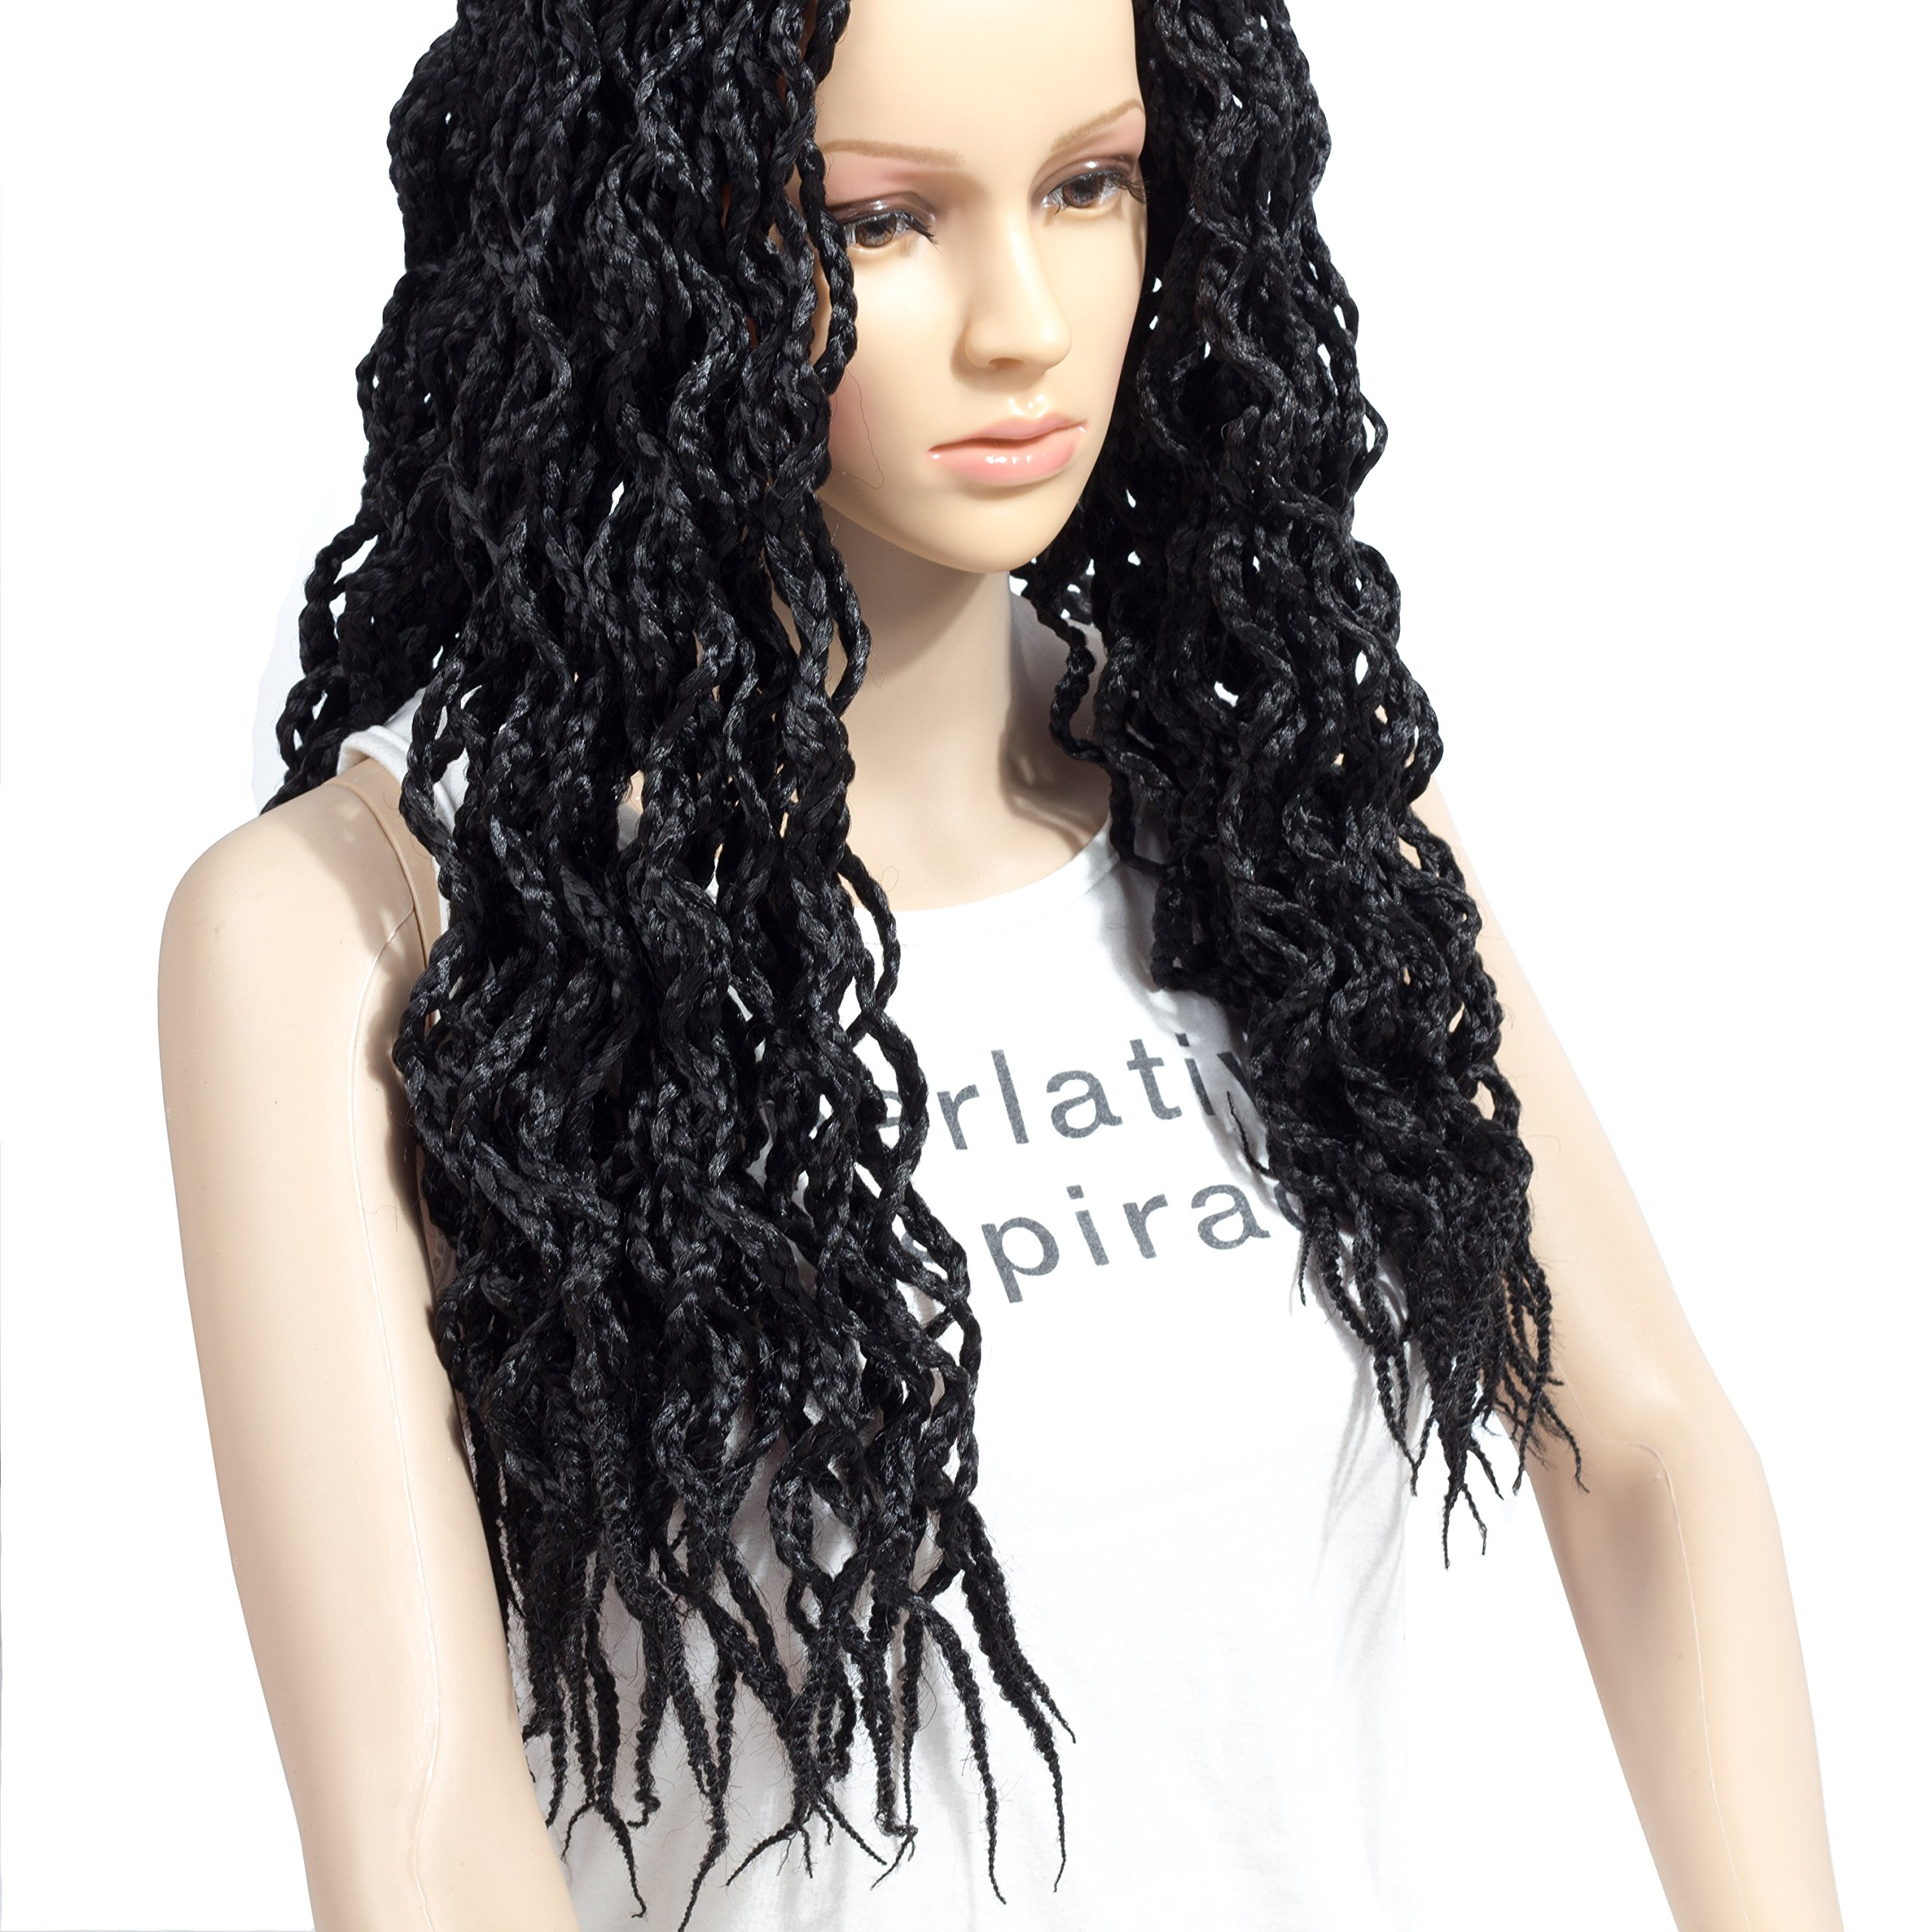 Get Quotations Ceedee 6 Packs Curly Box Braids Crochet Hair Extensions Synthetic Fiber